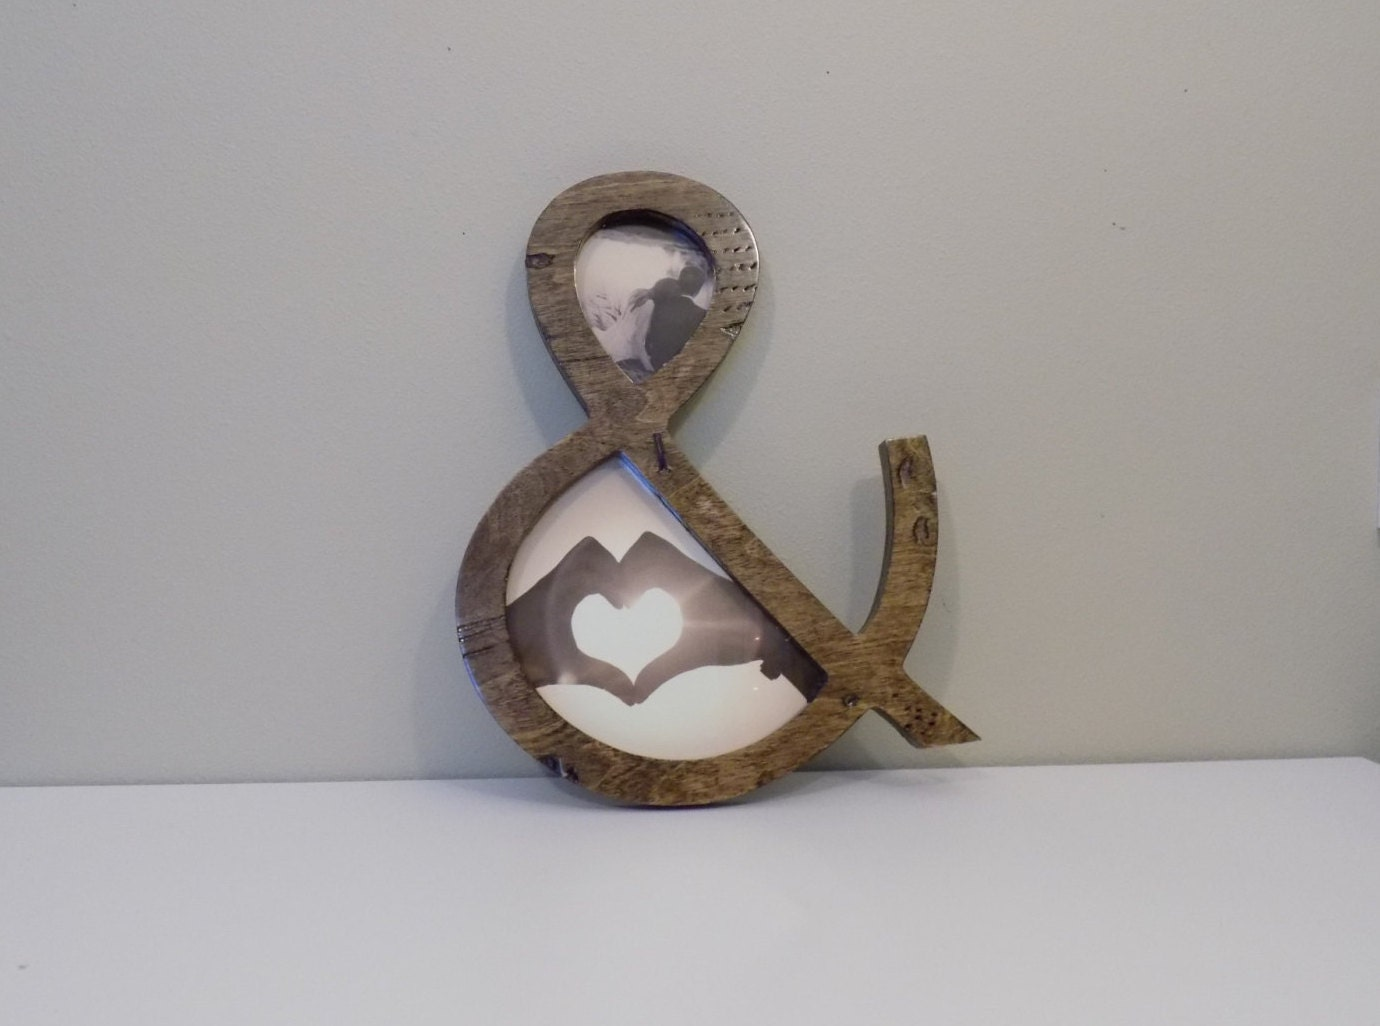 Ampersand picture frame from shapeco on etsy studio for Ampersand decoration etsy